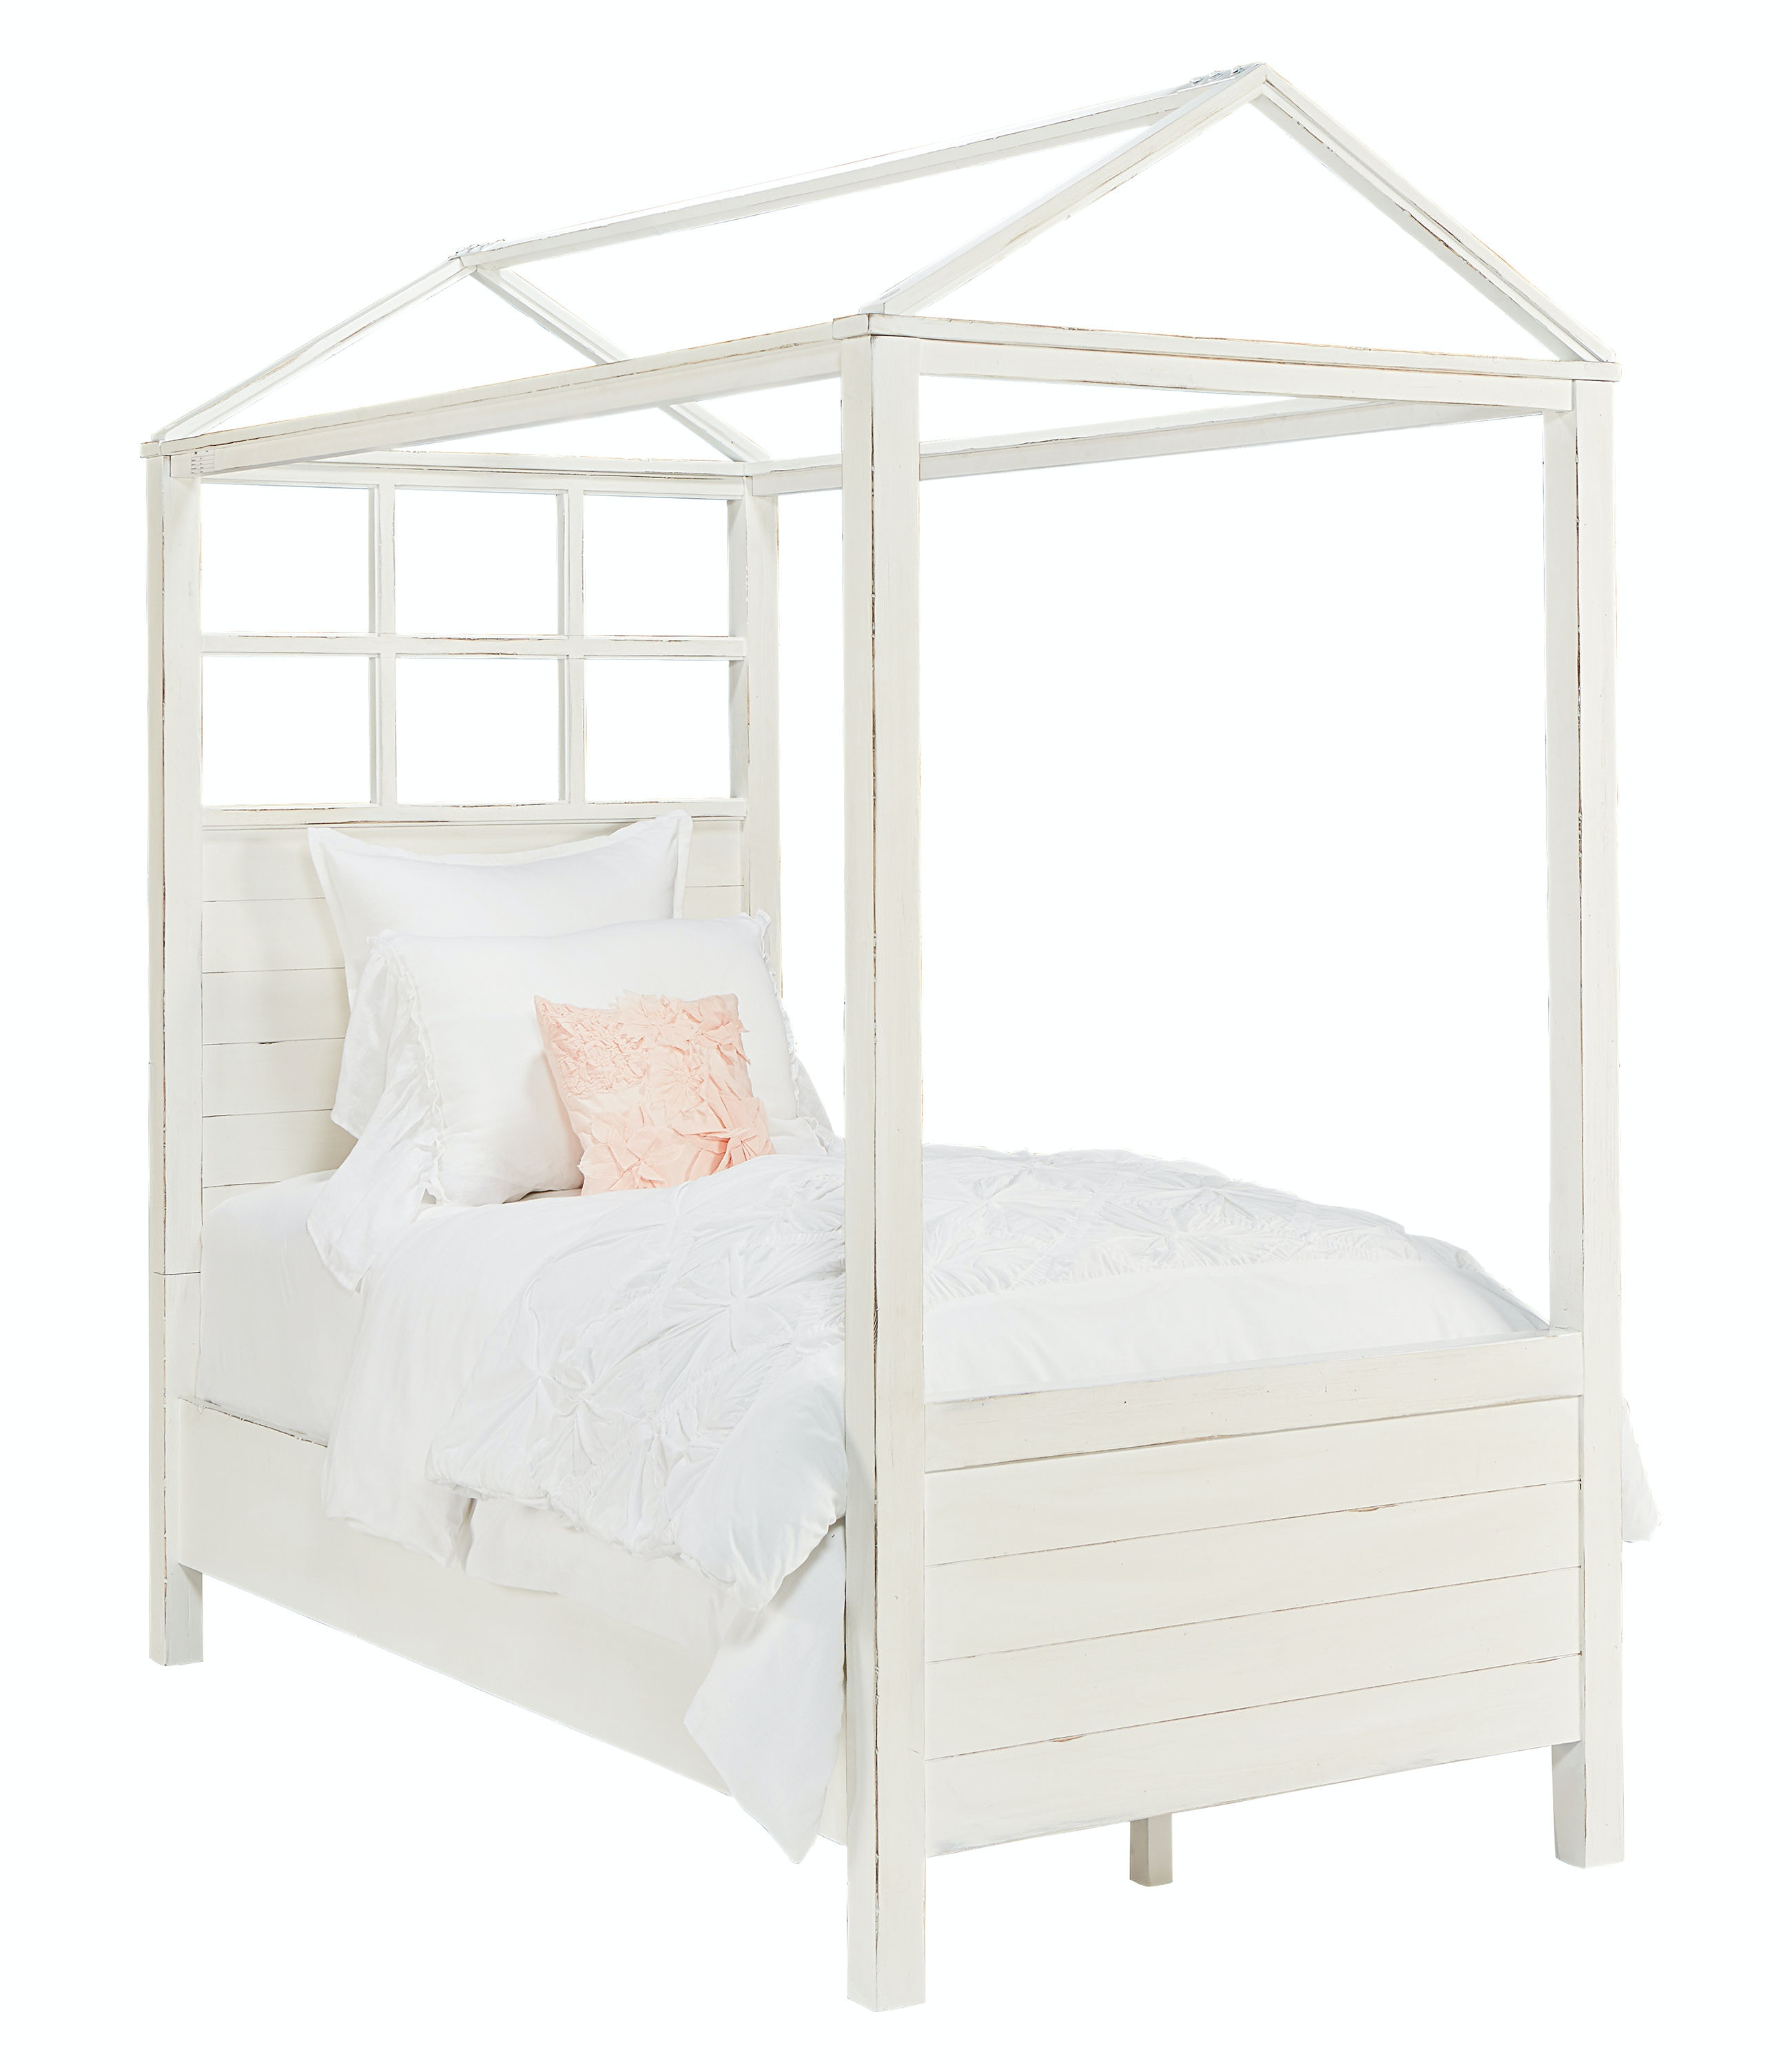 Magnolia Kids - Boho Playhouse Canopy Bed - JOu0027S WHITE - FULL  sc 1 st  Star Furniture : full canopy bed white - memphite.com